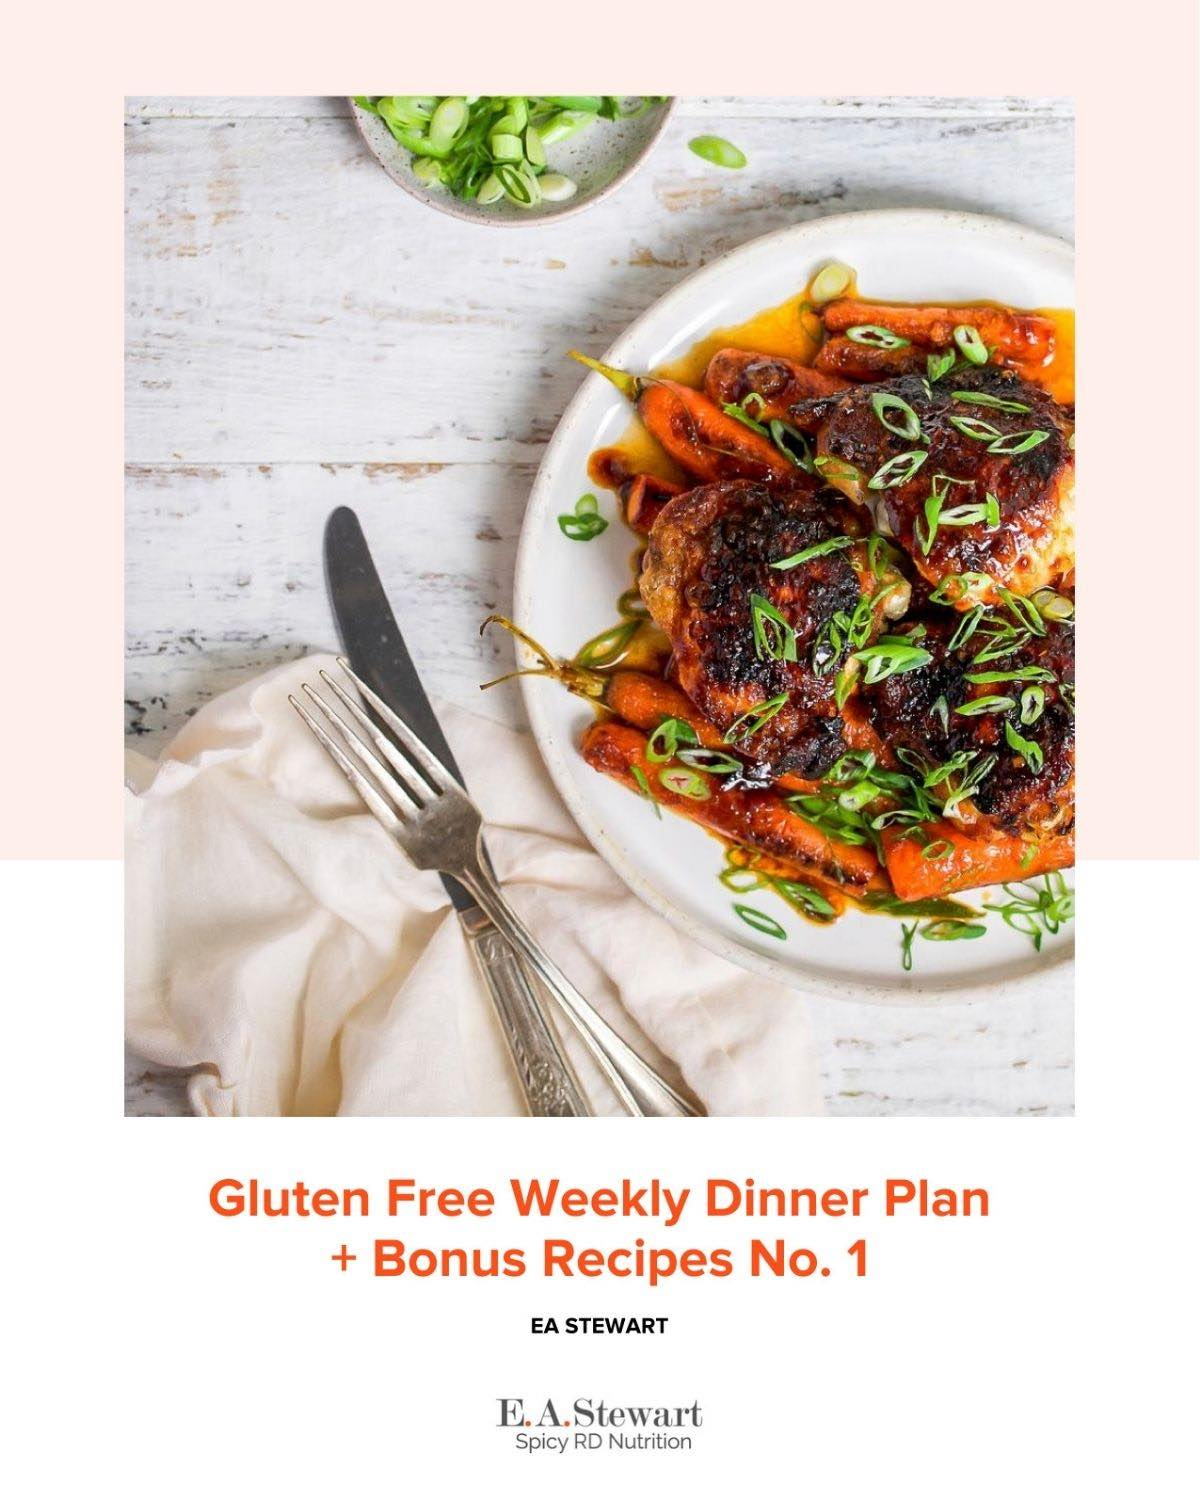 Gluten free Healthy Meal Plan with Grocery List  Cover Image is a plate of chicken with carrots.